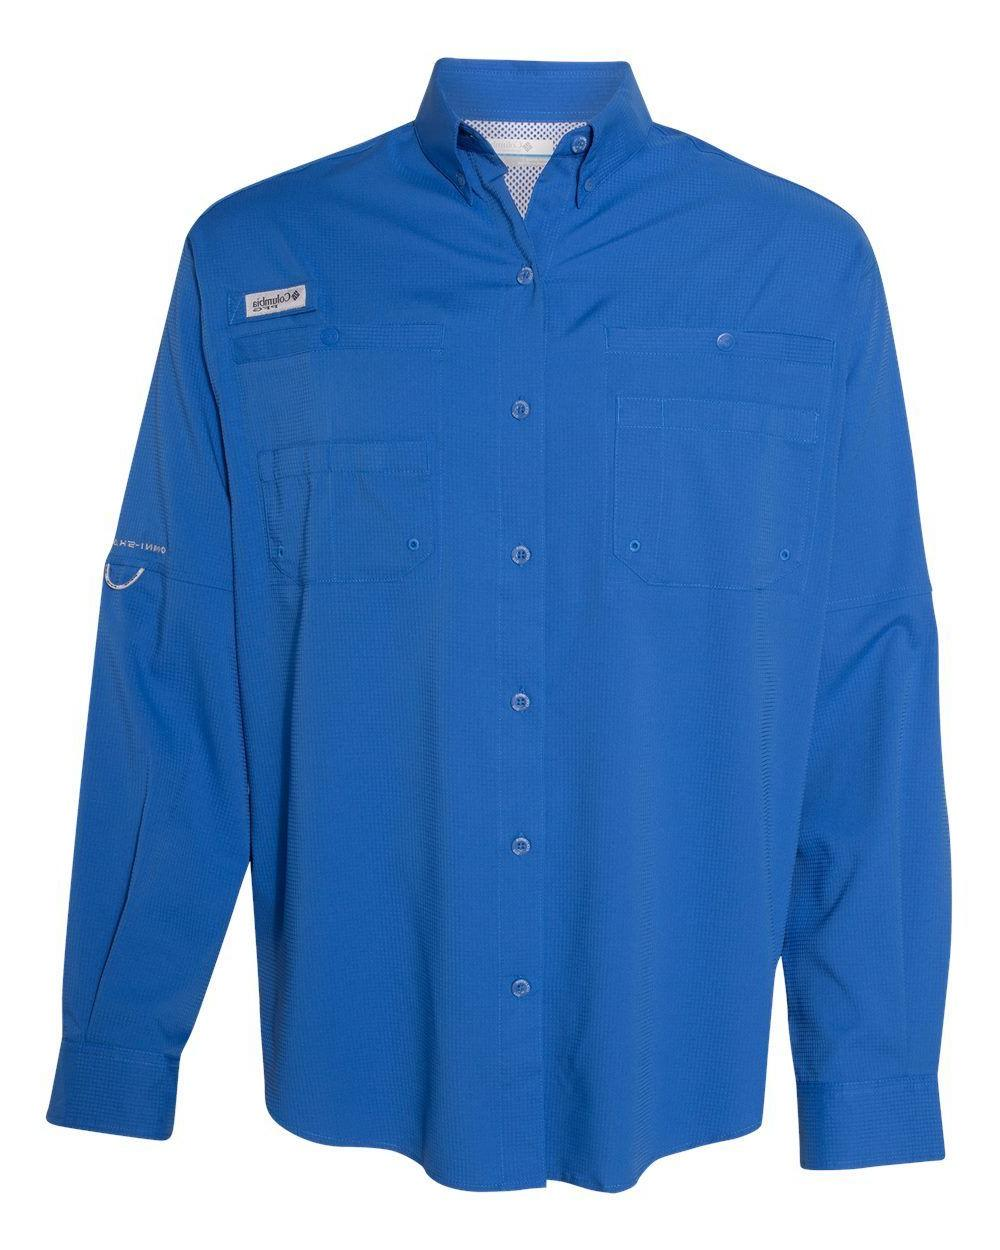 Columbia Sportswear Tamiami Shirt, Sizes